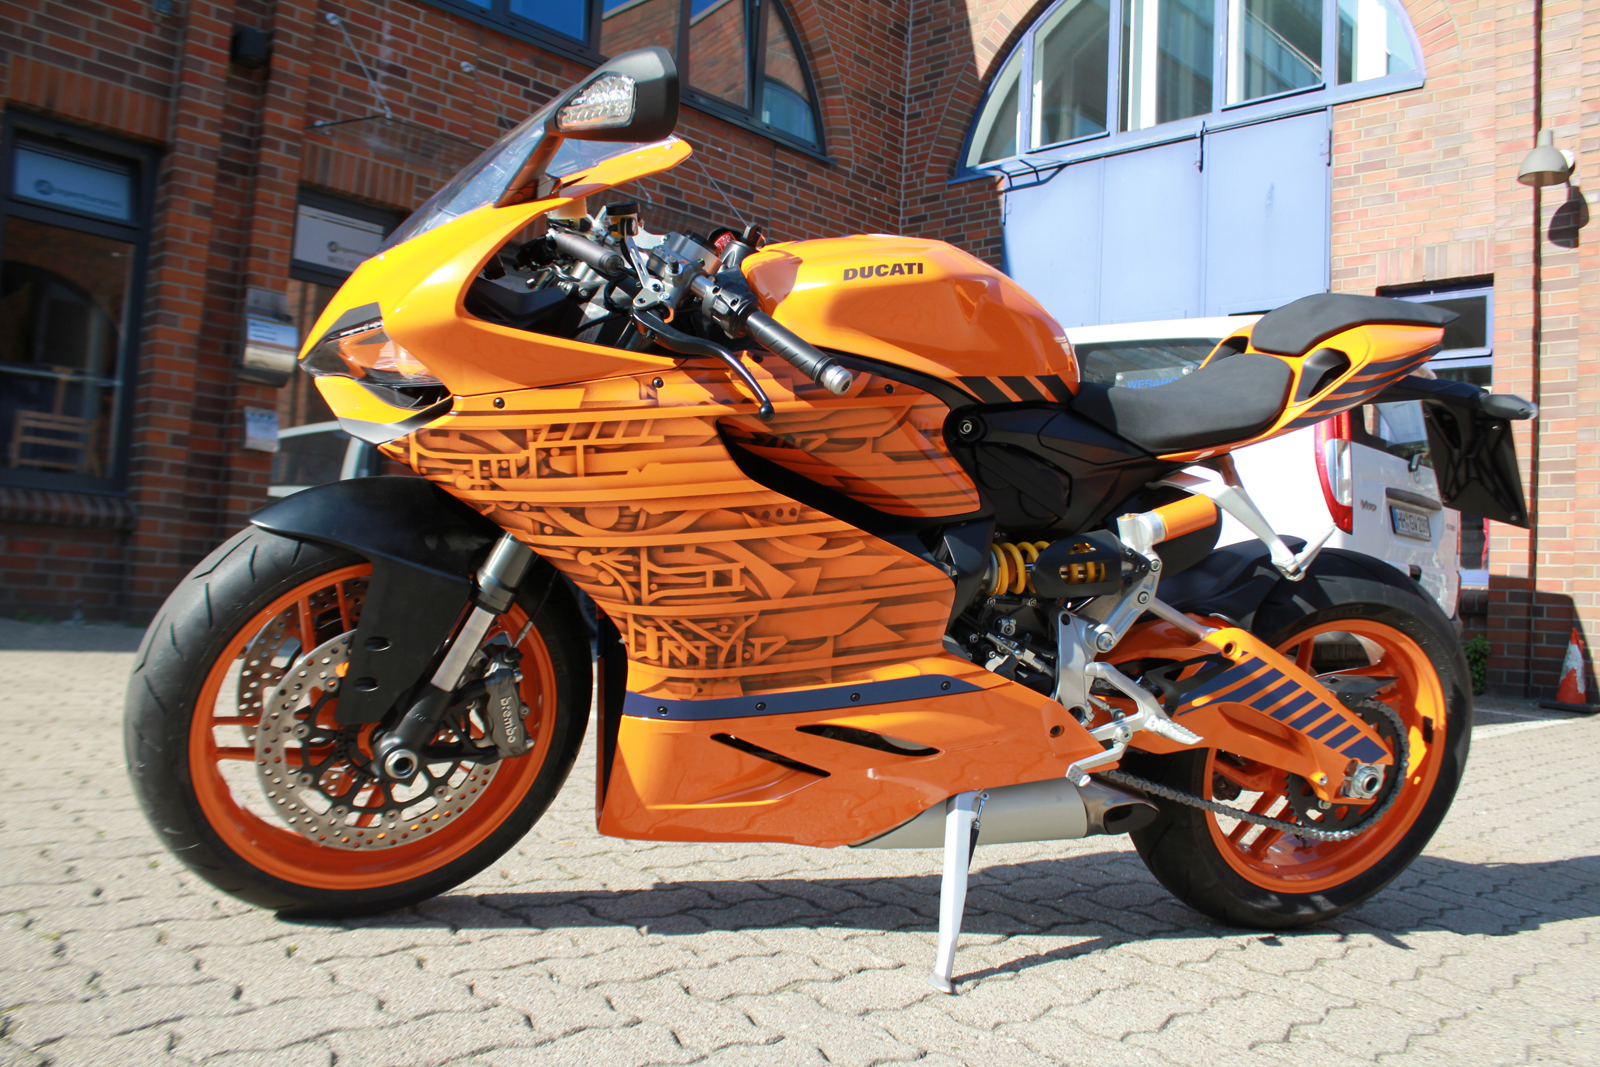 Auto Folierung Car Wrapping Ducati Superquadro Orange Design